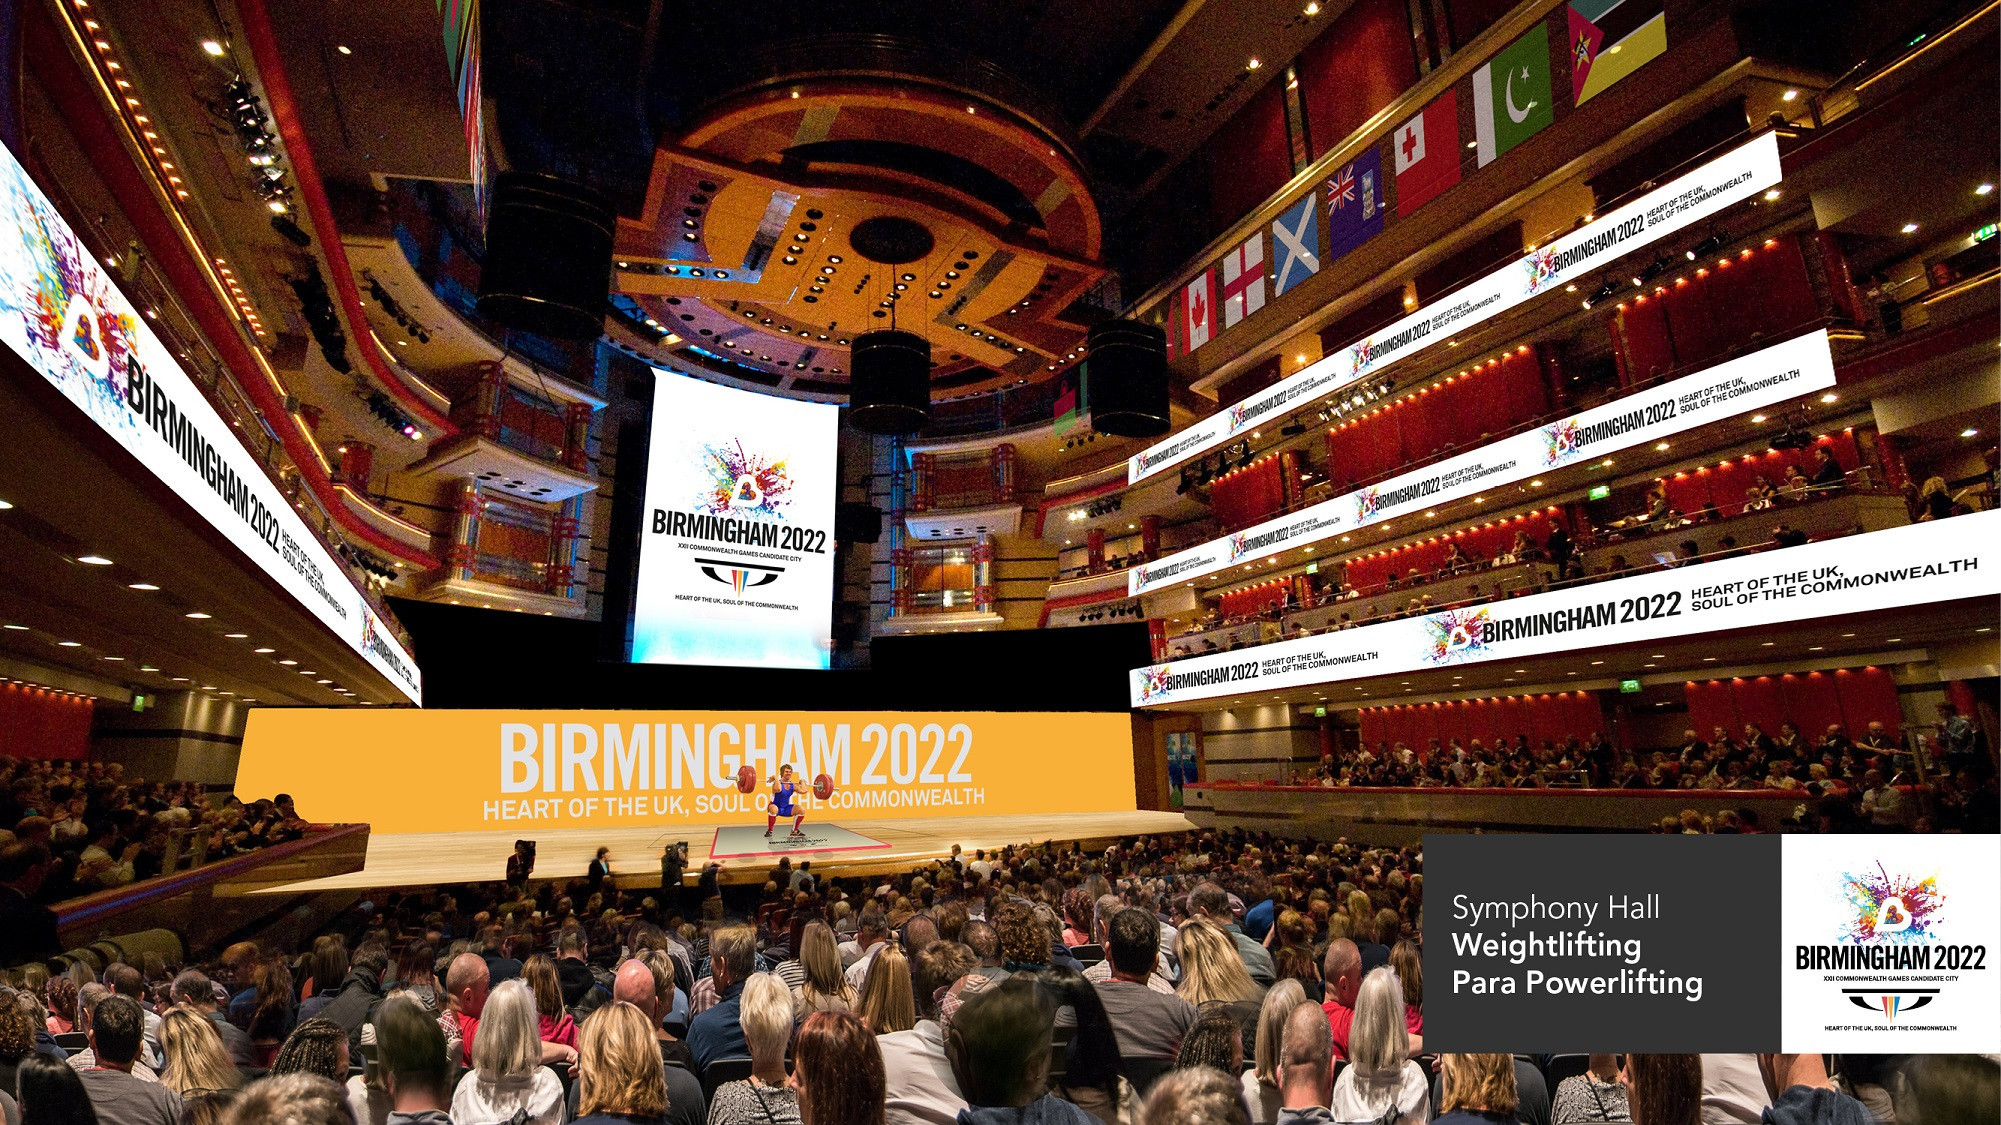 Symphony Hall would be among the venues if Birmingham is awarded the 2022 Commonwealth Games ©Birmingham 2022